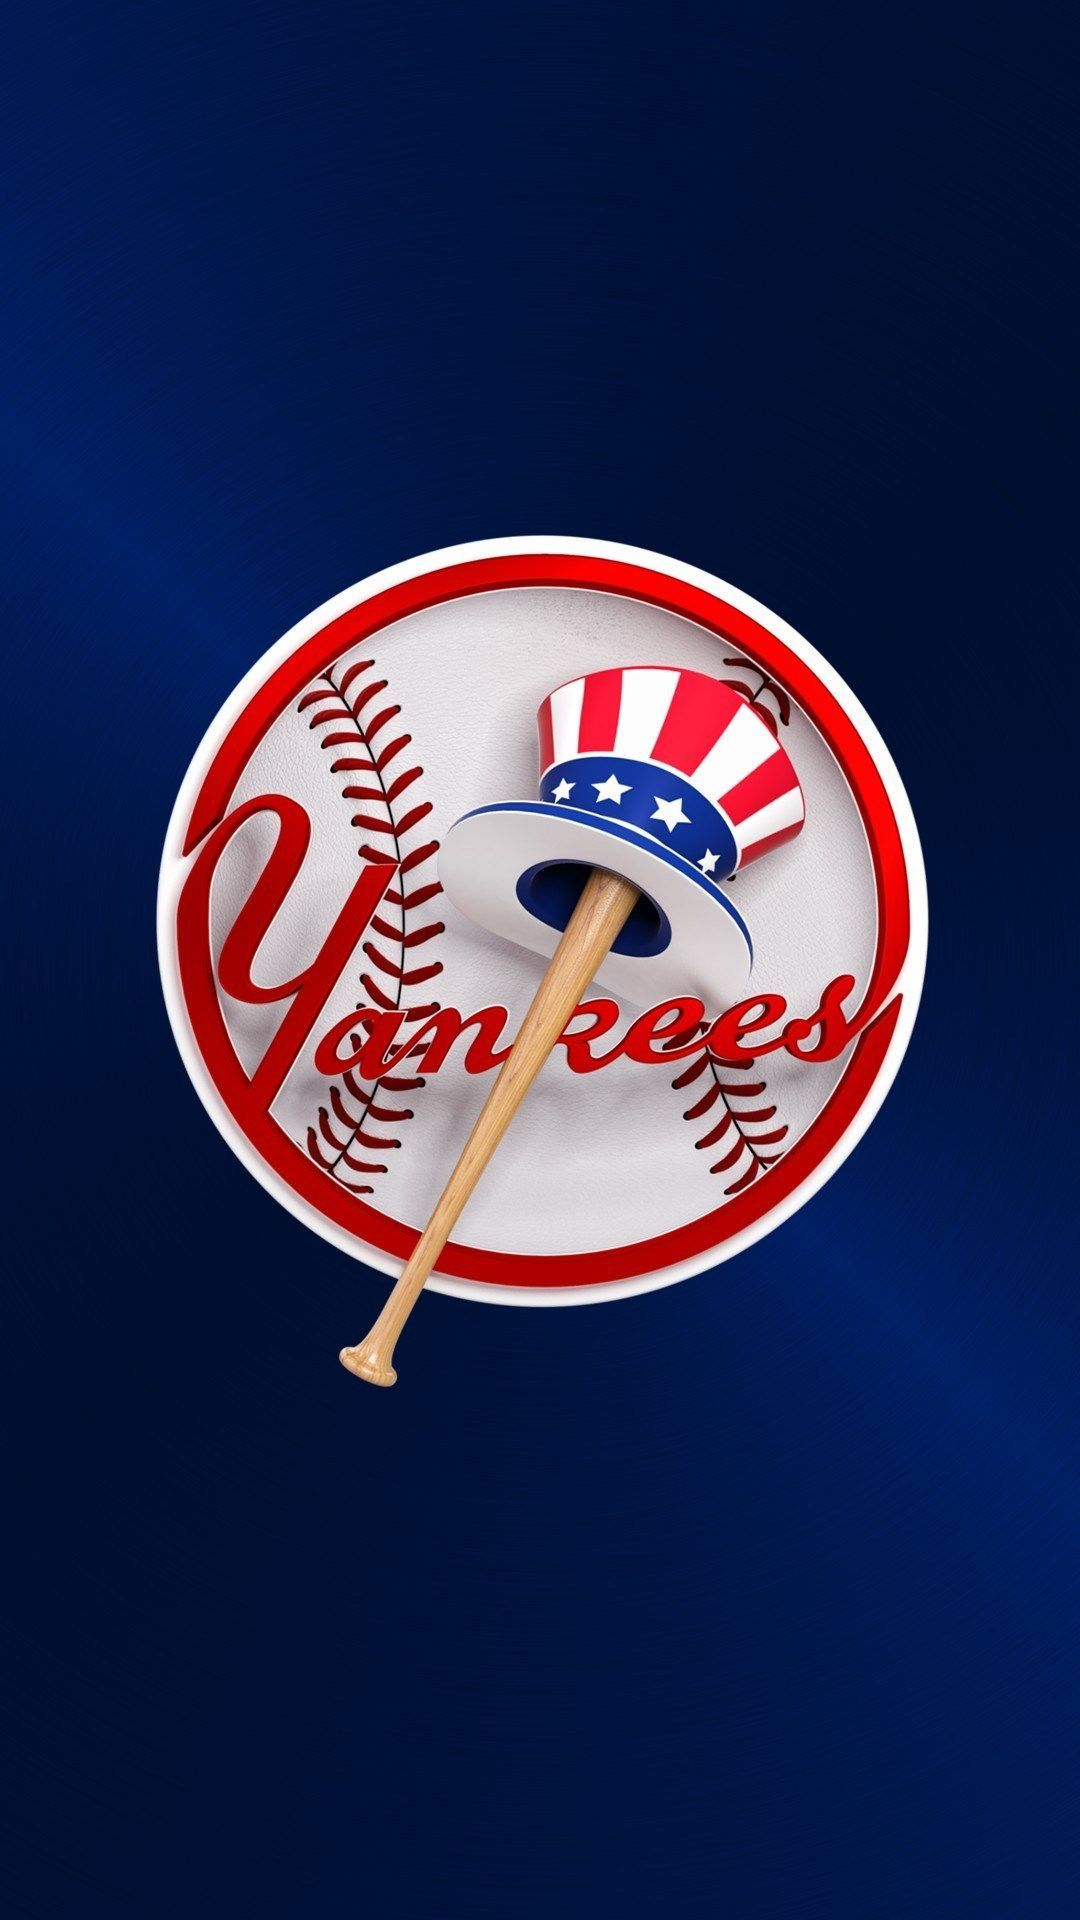 Mlb Baseball Wallpaper Mobile In 2020 New York Yankees New York Yankees Logo Baseball Wallpaper